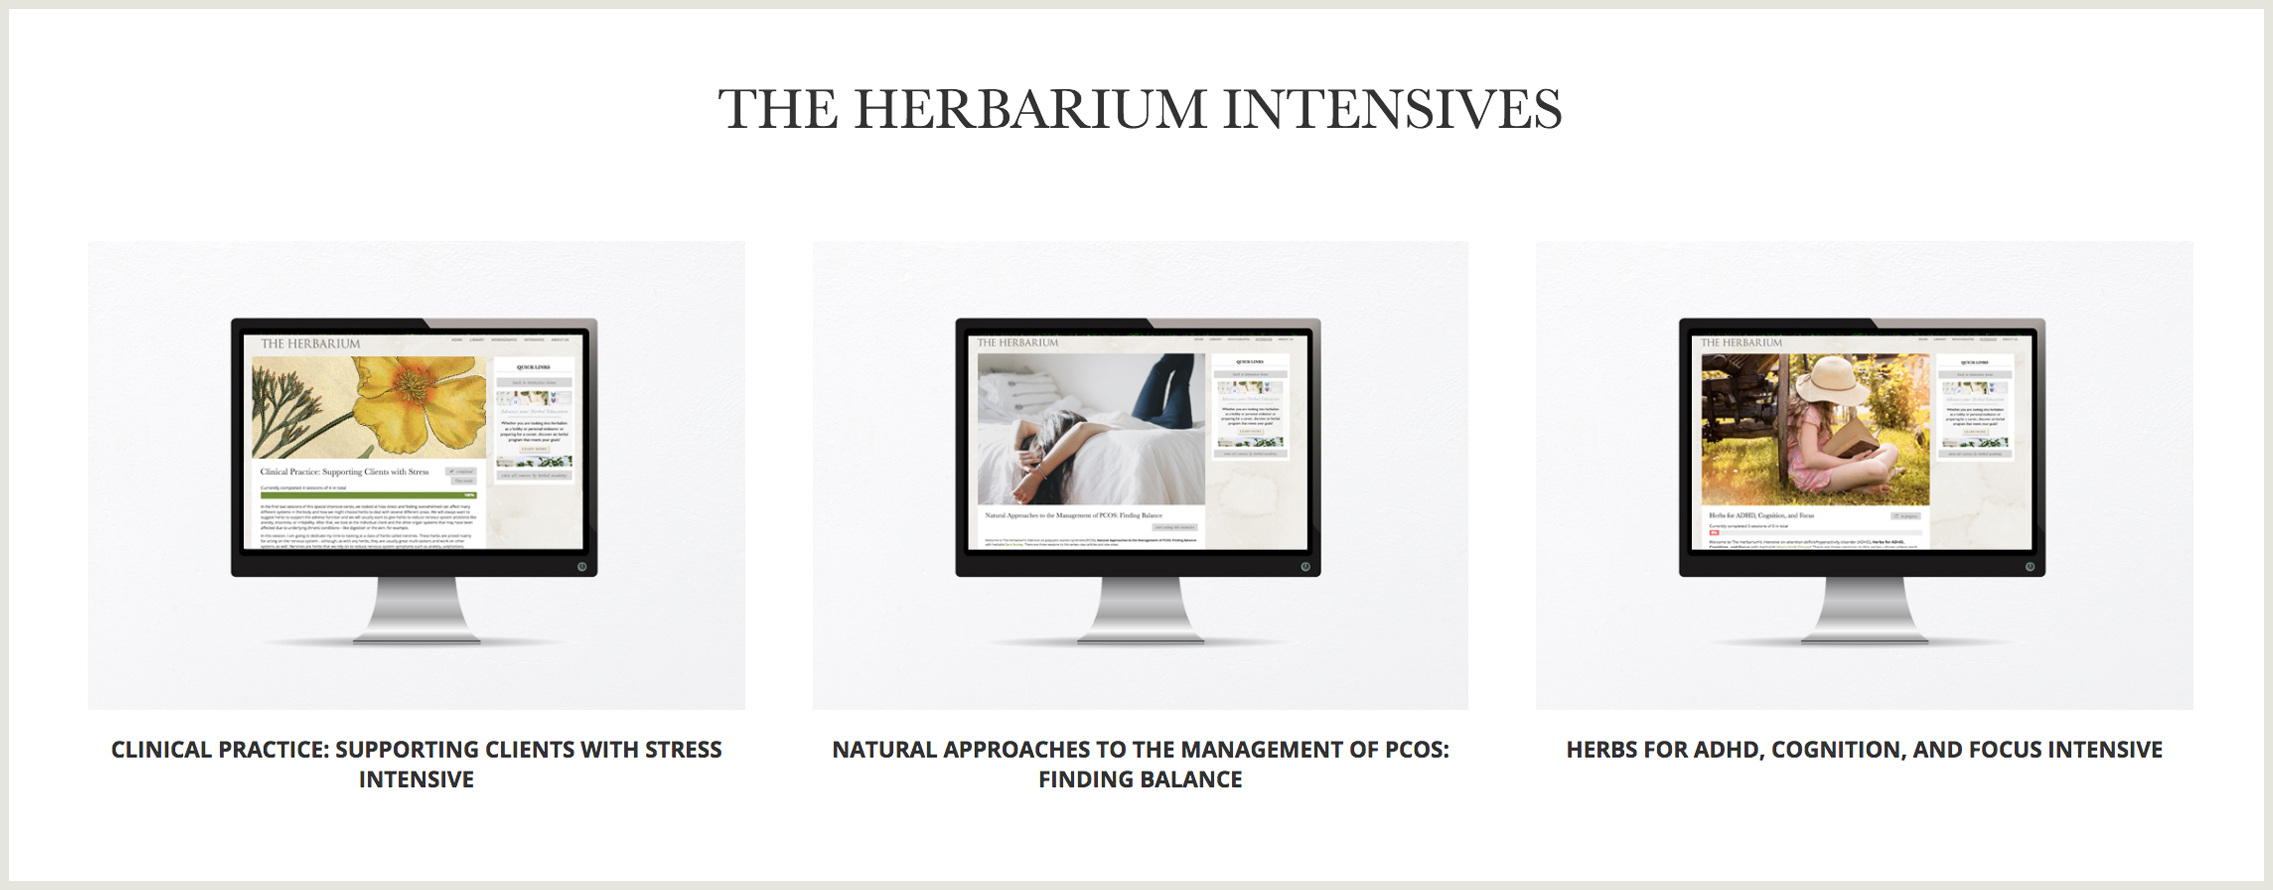 THE HERBARIUM featured Herbalism Intensive Short Courses